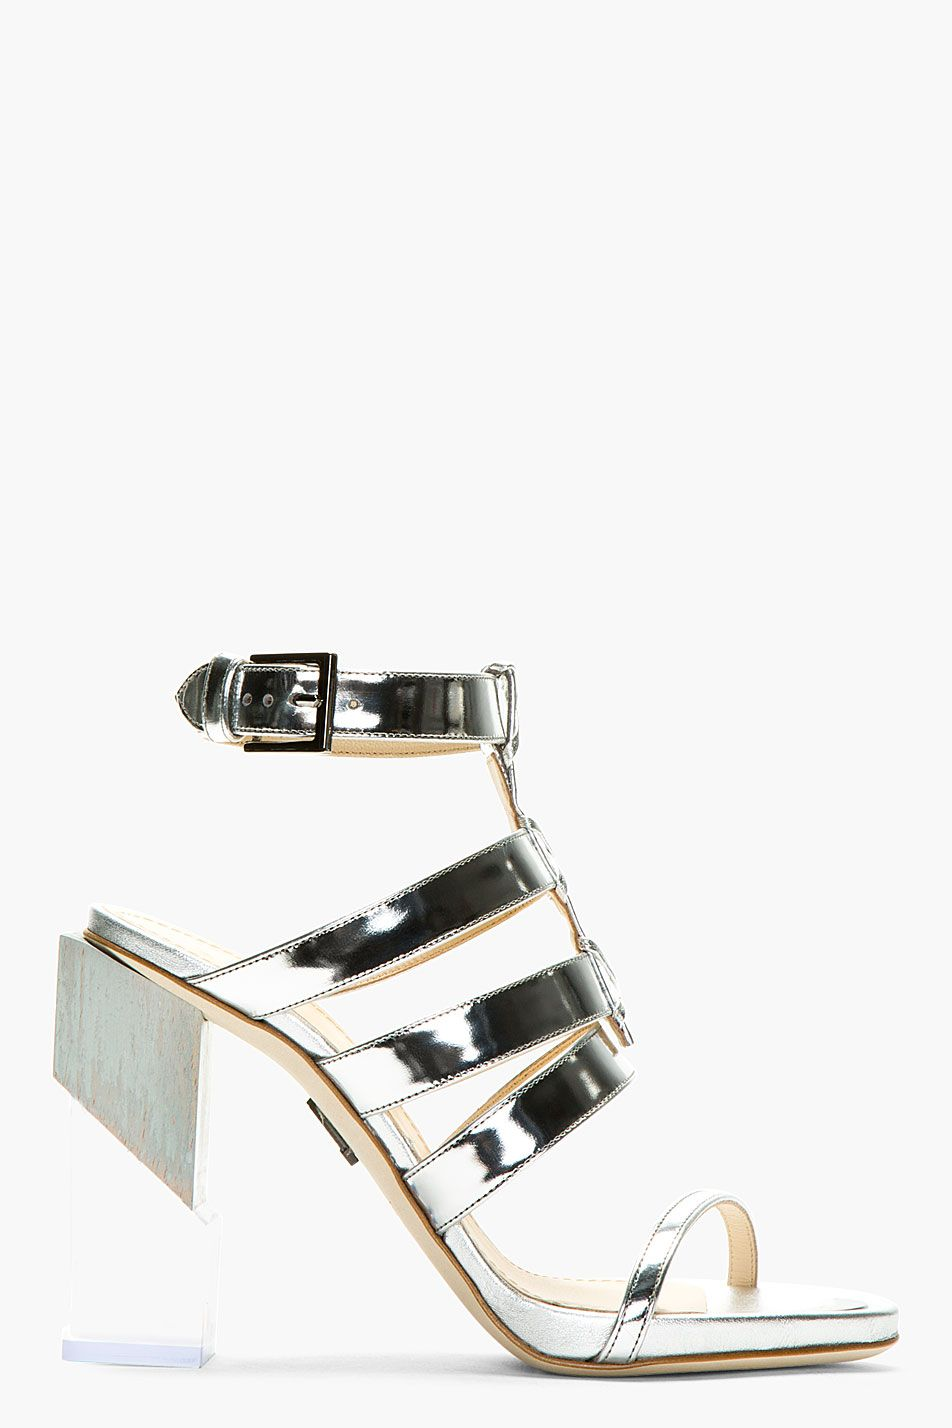 free shipping best store to get Maiyet Multistrap Leather Sandals clearance many kinds of aY1R4lx9x6